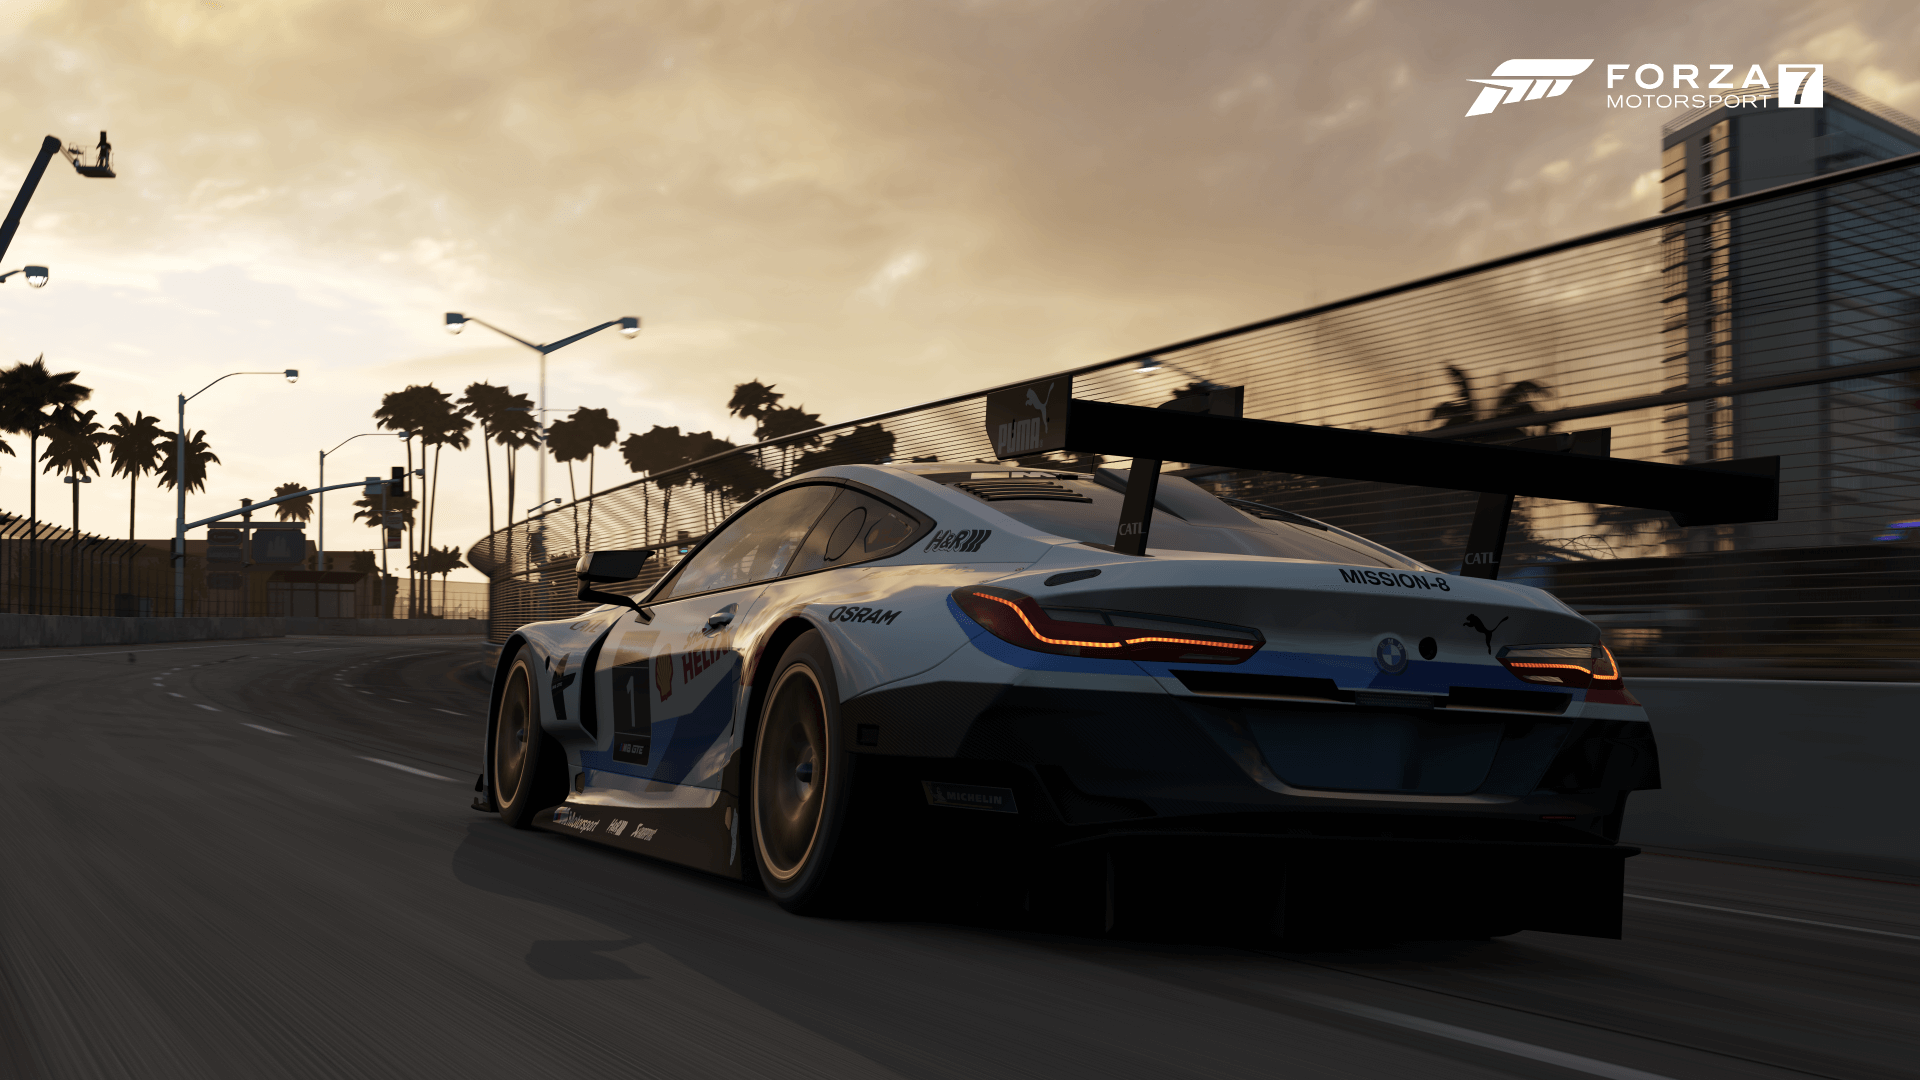 Forza Motorsport 7 December Update Now Available New Cars Overhauled Ffb System And More